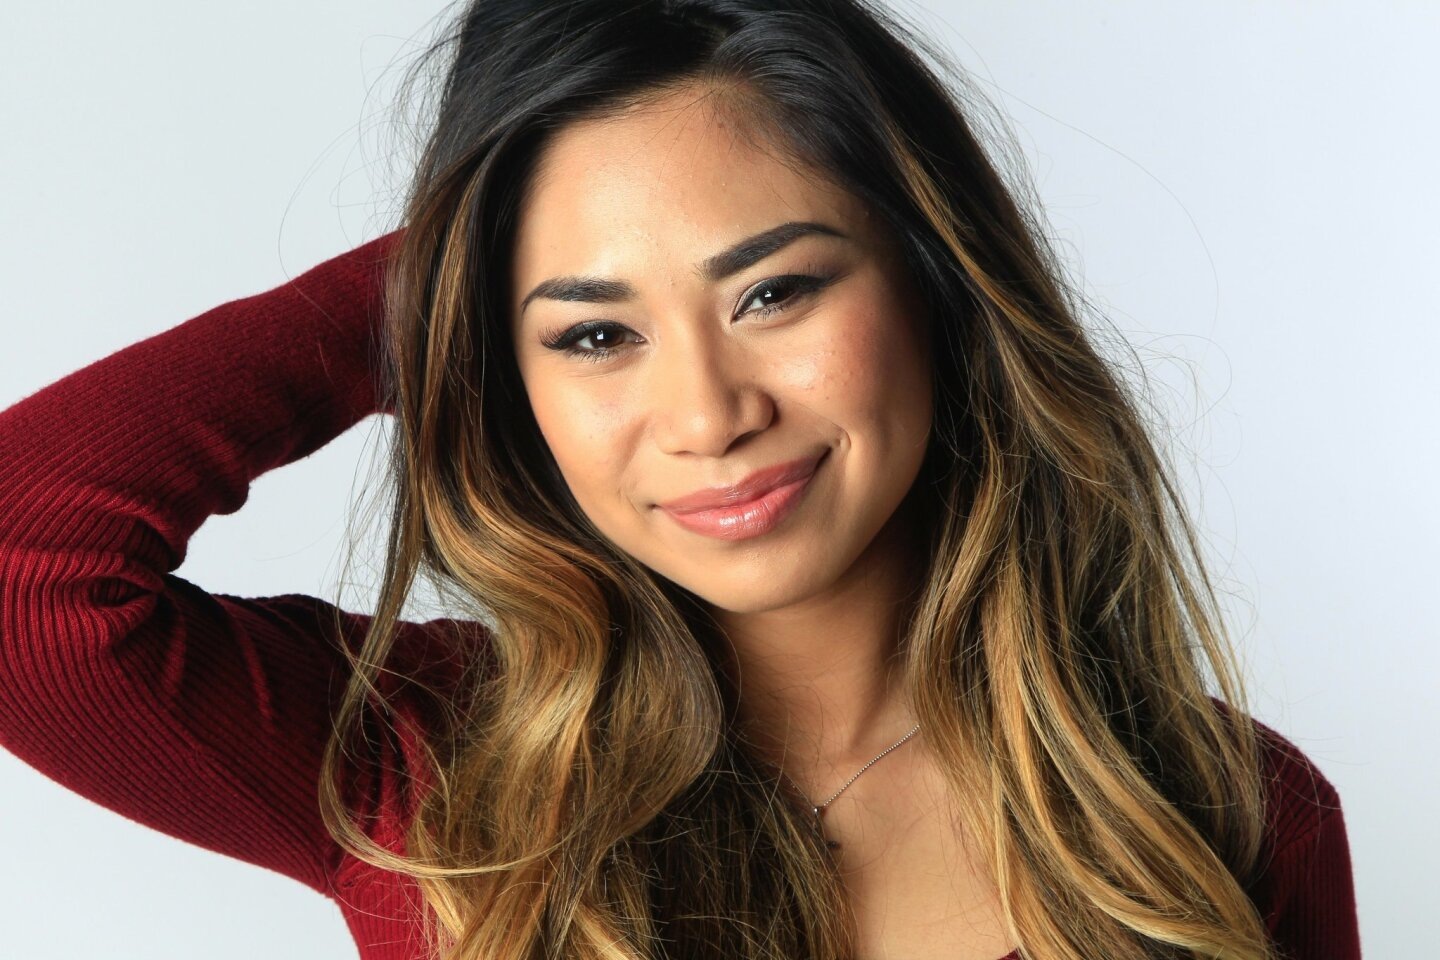 Jessica Sanchez at the UT w/ M&M's